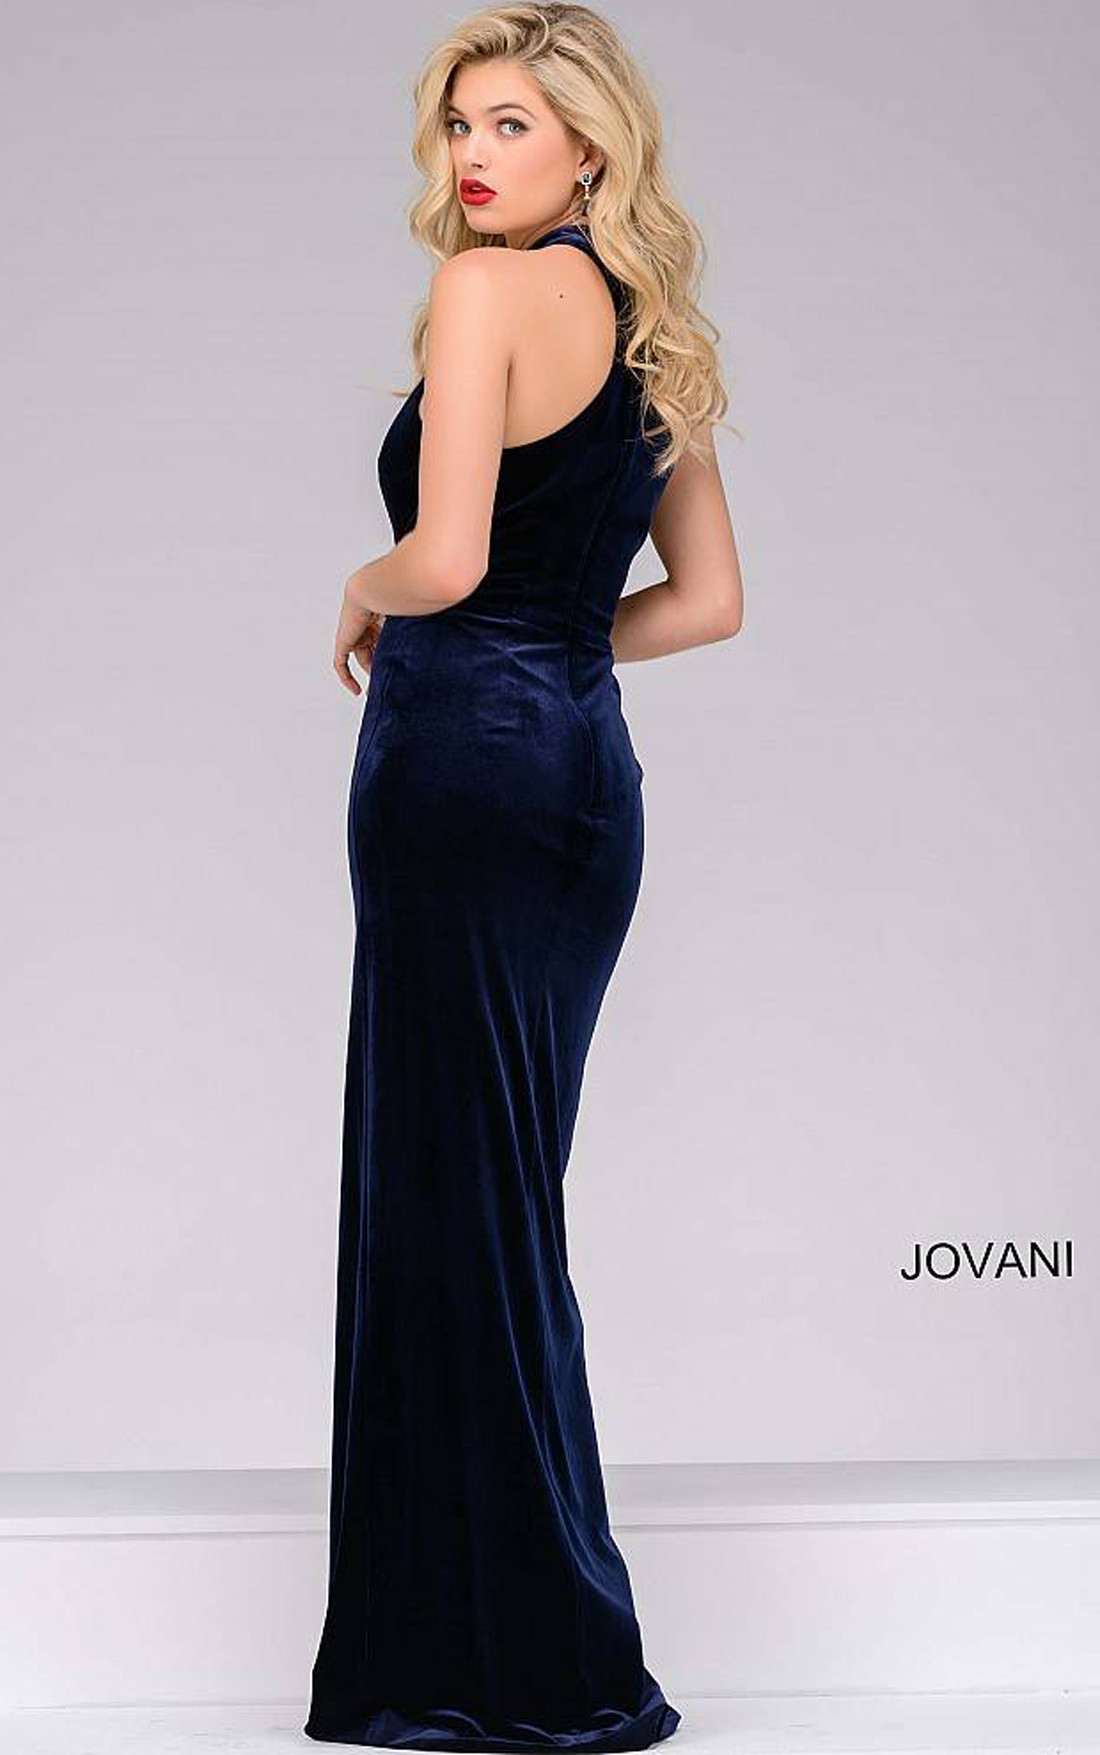 Jovani - Navy Velvet Dress with a Satin Over Skirt (45182)